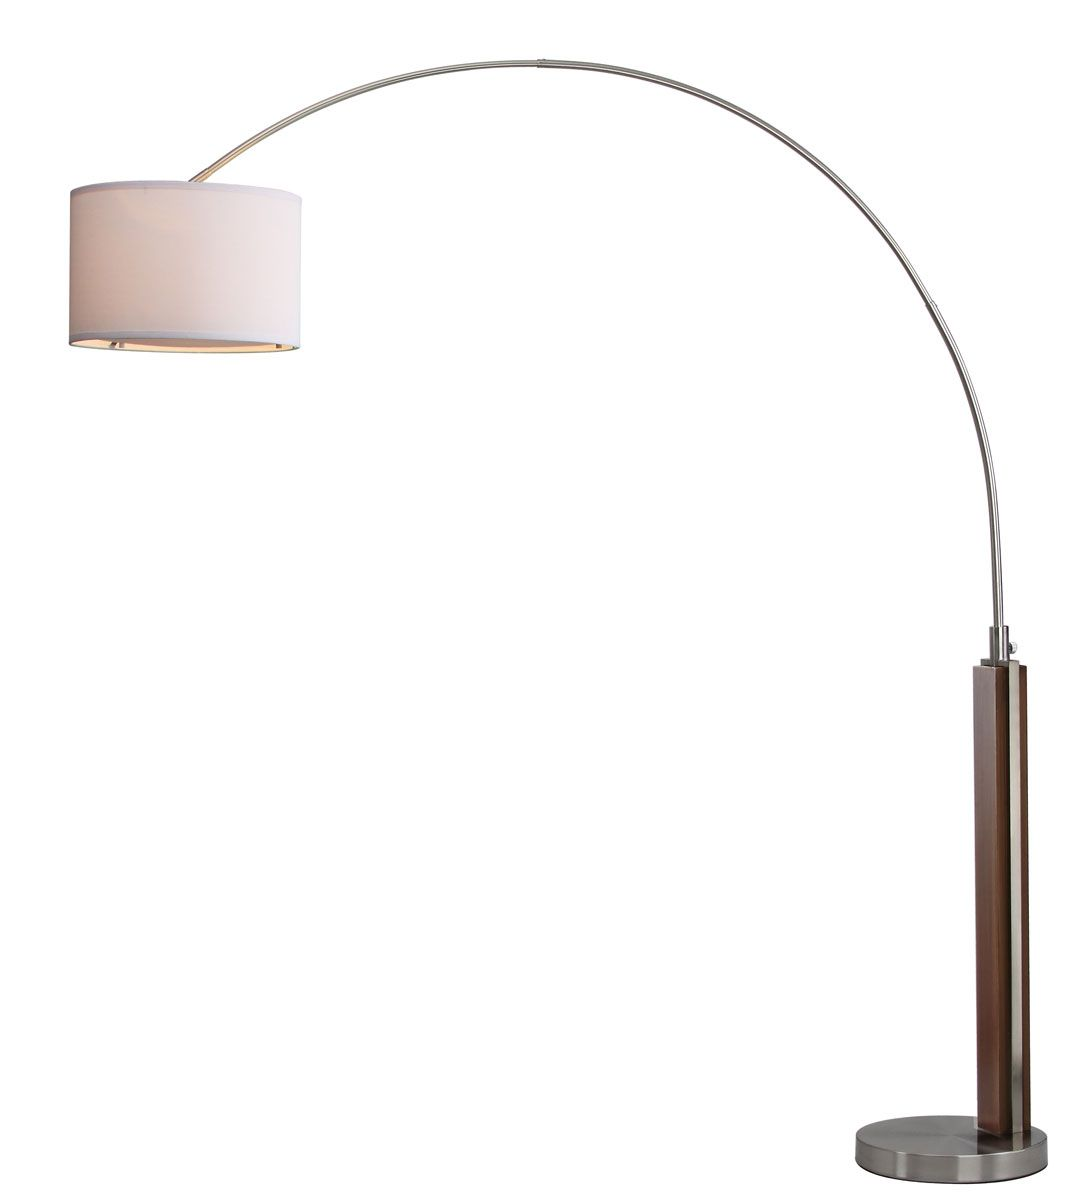 LIT4354A Floor Lamps - Lighting by